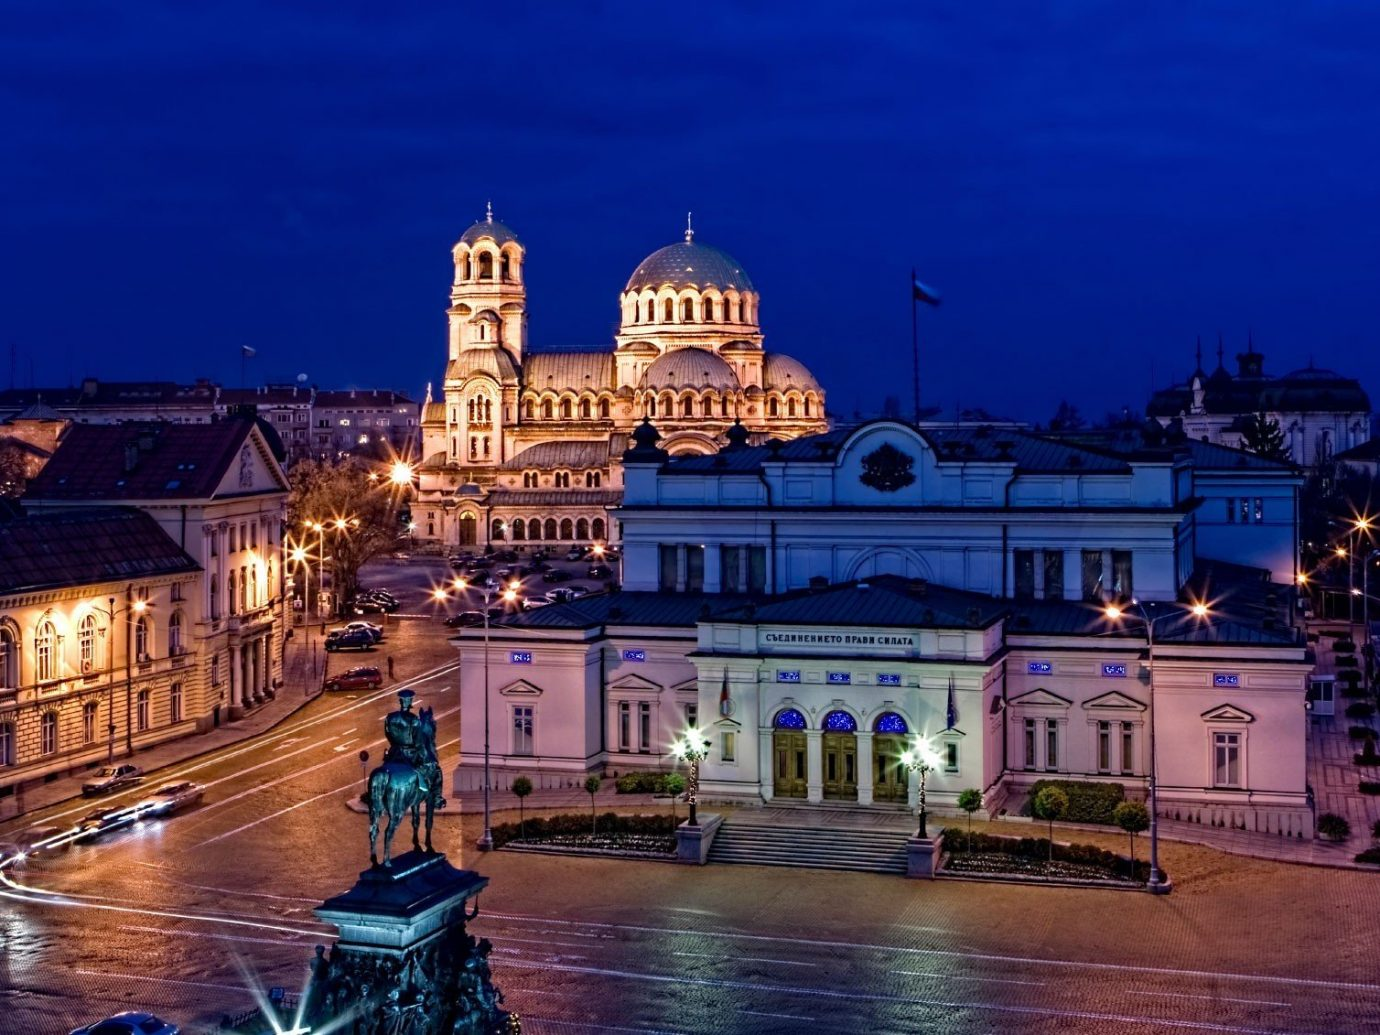 Trip Ideas outdoor night landmark Town cityscape City evening reflection dusk waterway place of worship cathedral